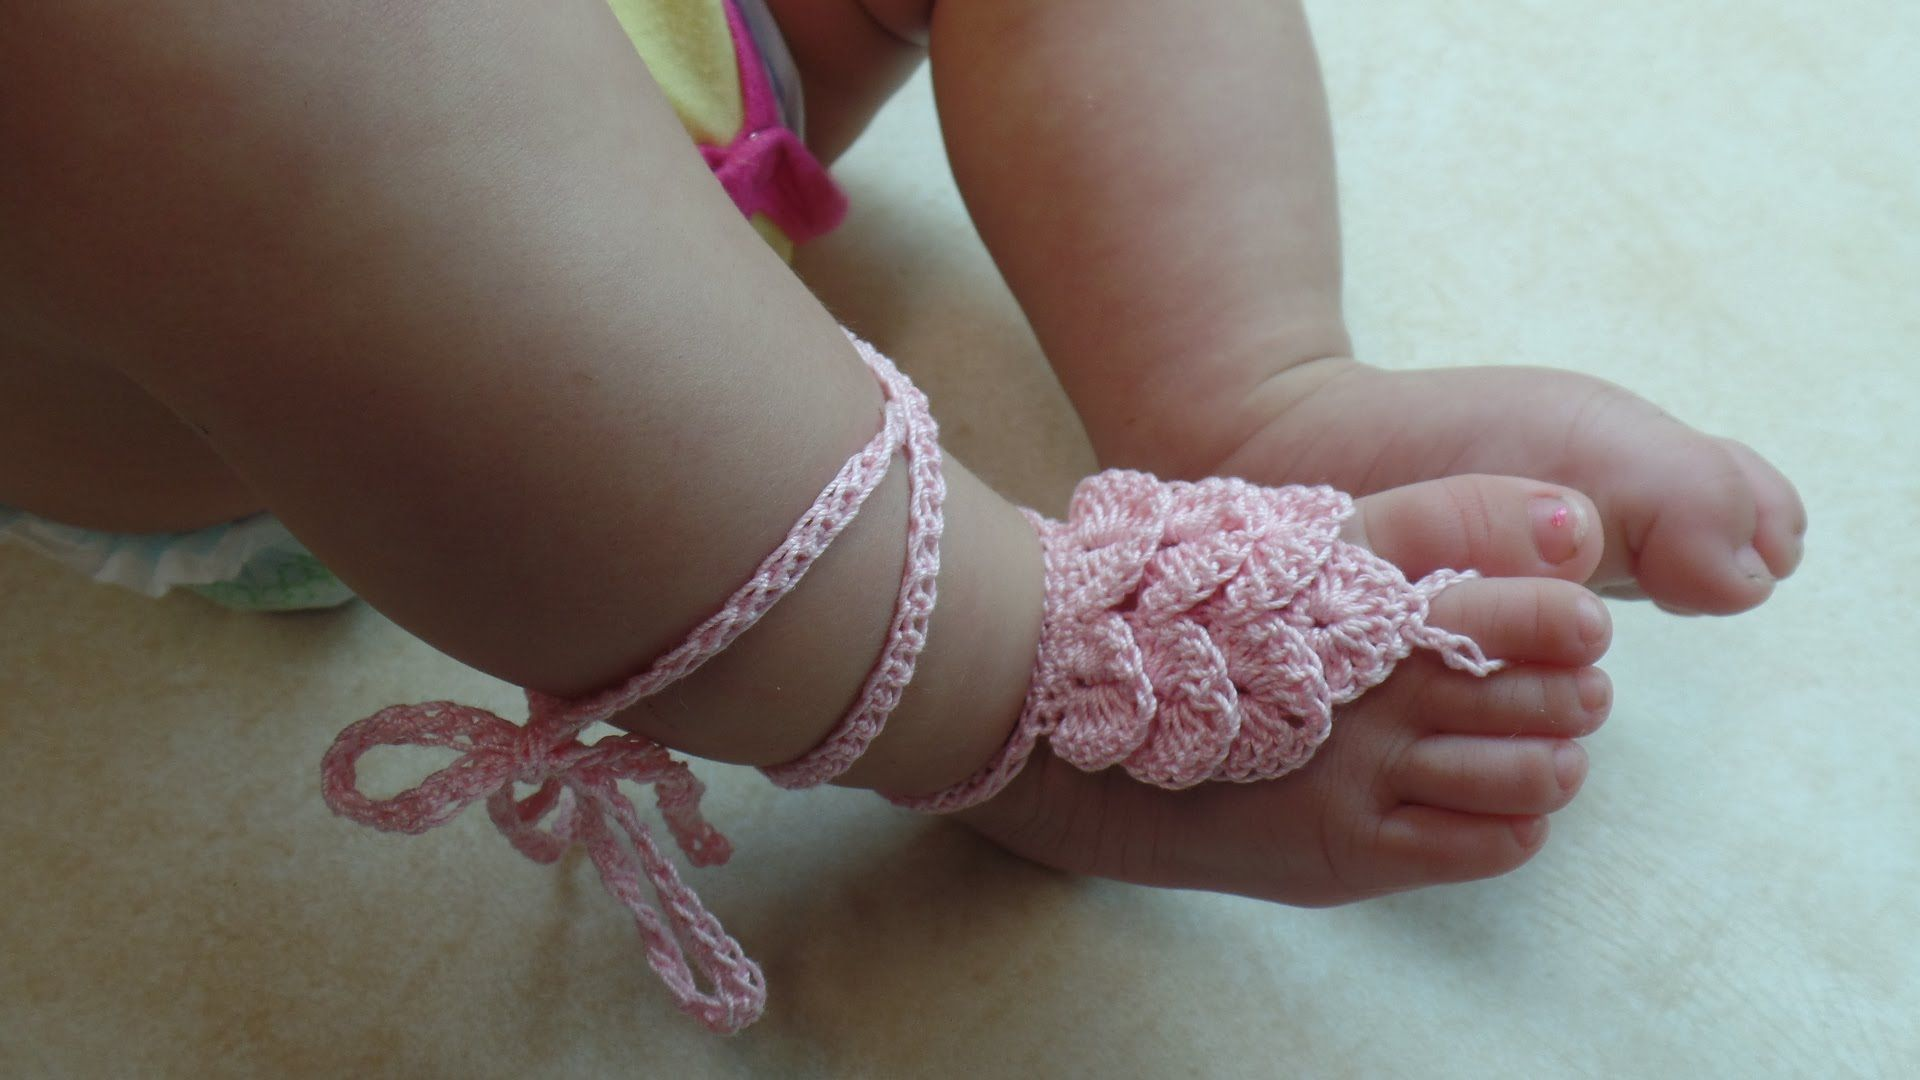 How To Crochet Crocodile Stitch Baby Barefoot Sandals With Thread Tutorial 317 Crochet Baby Sandals Crochet Baby Shoes Free Pattern Barefoot Sandals Baby